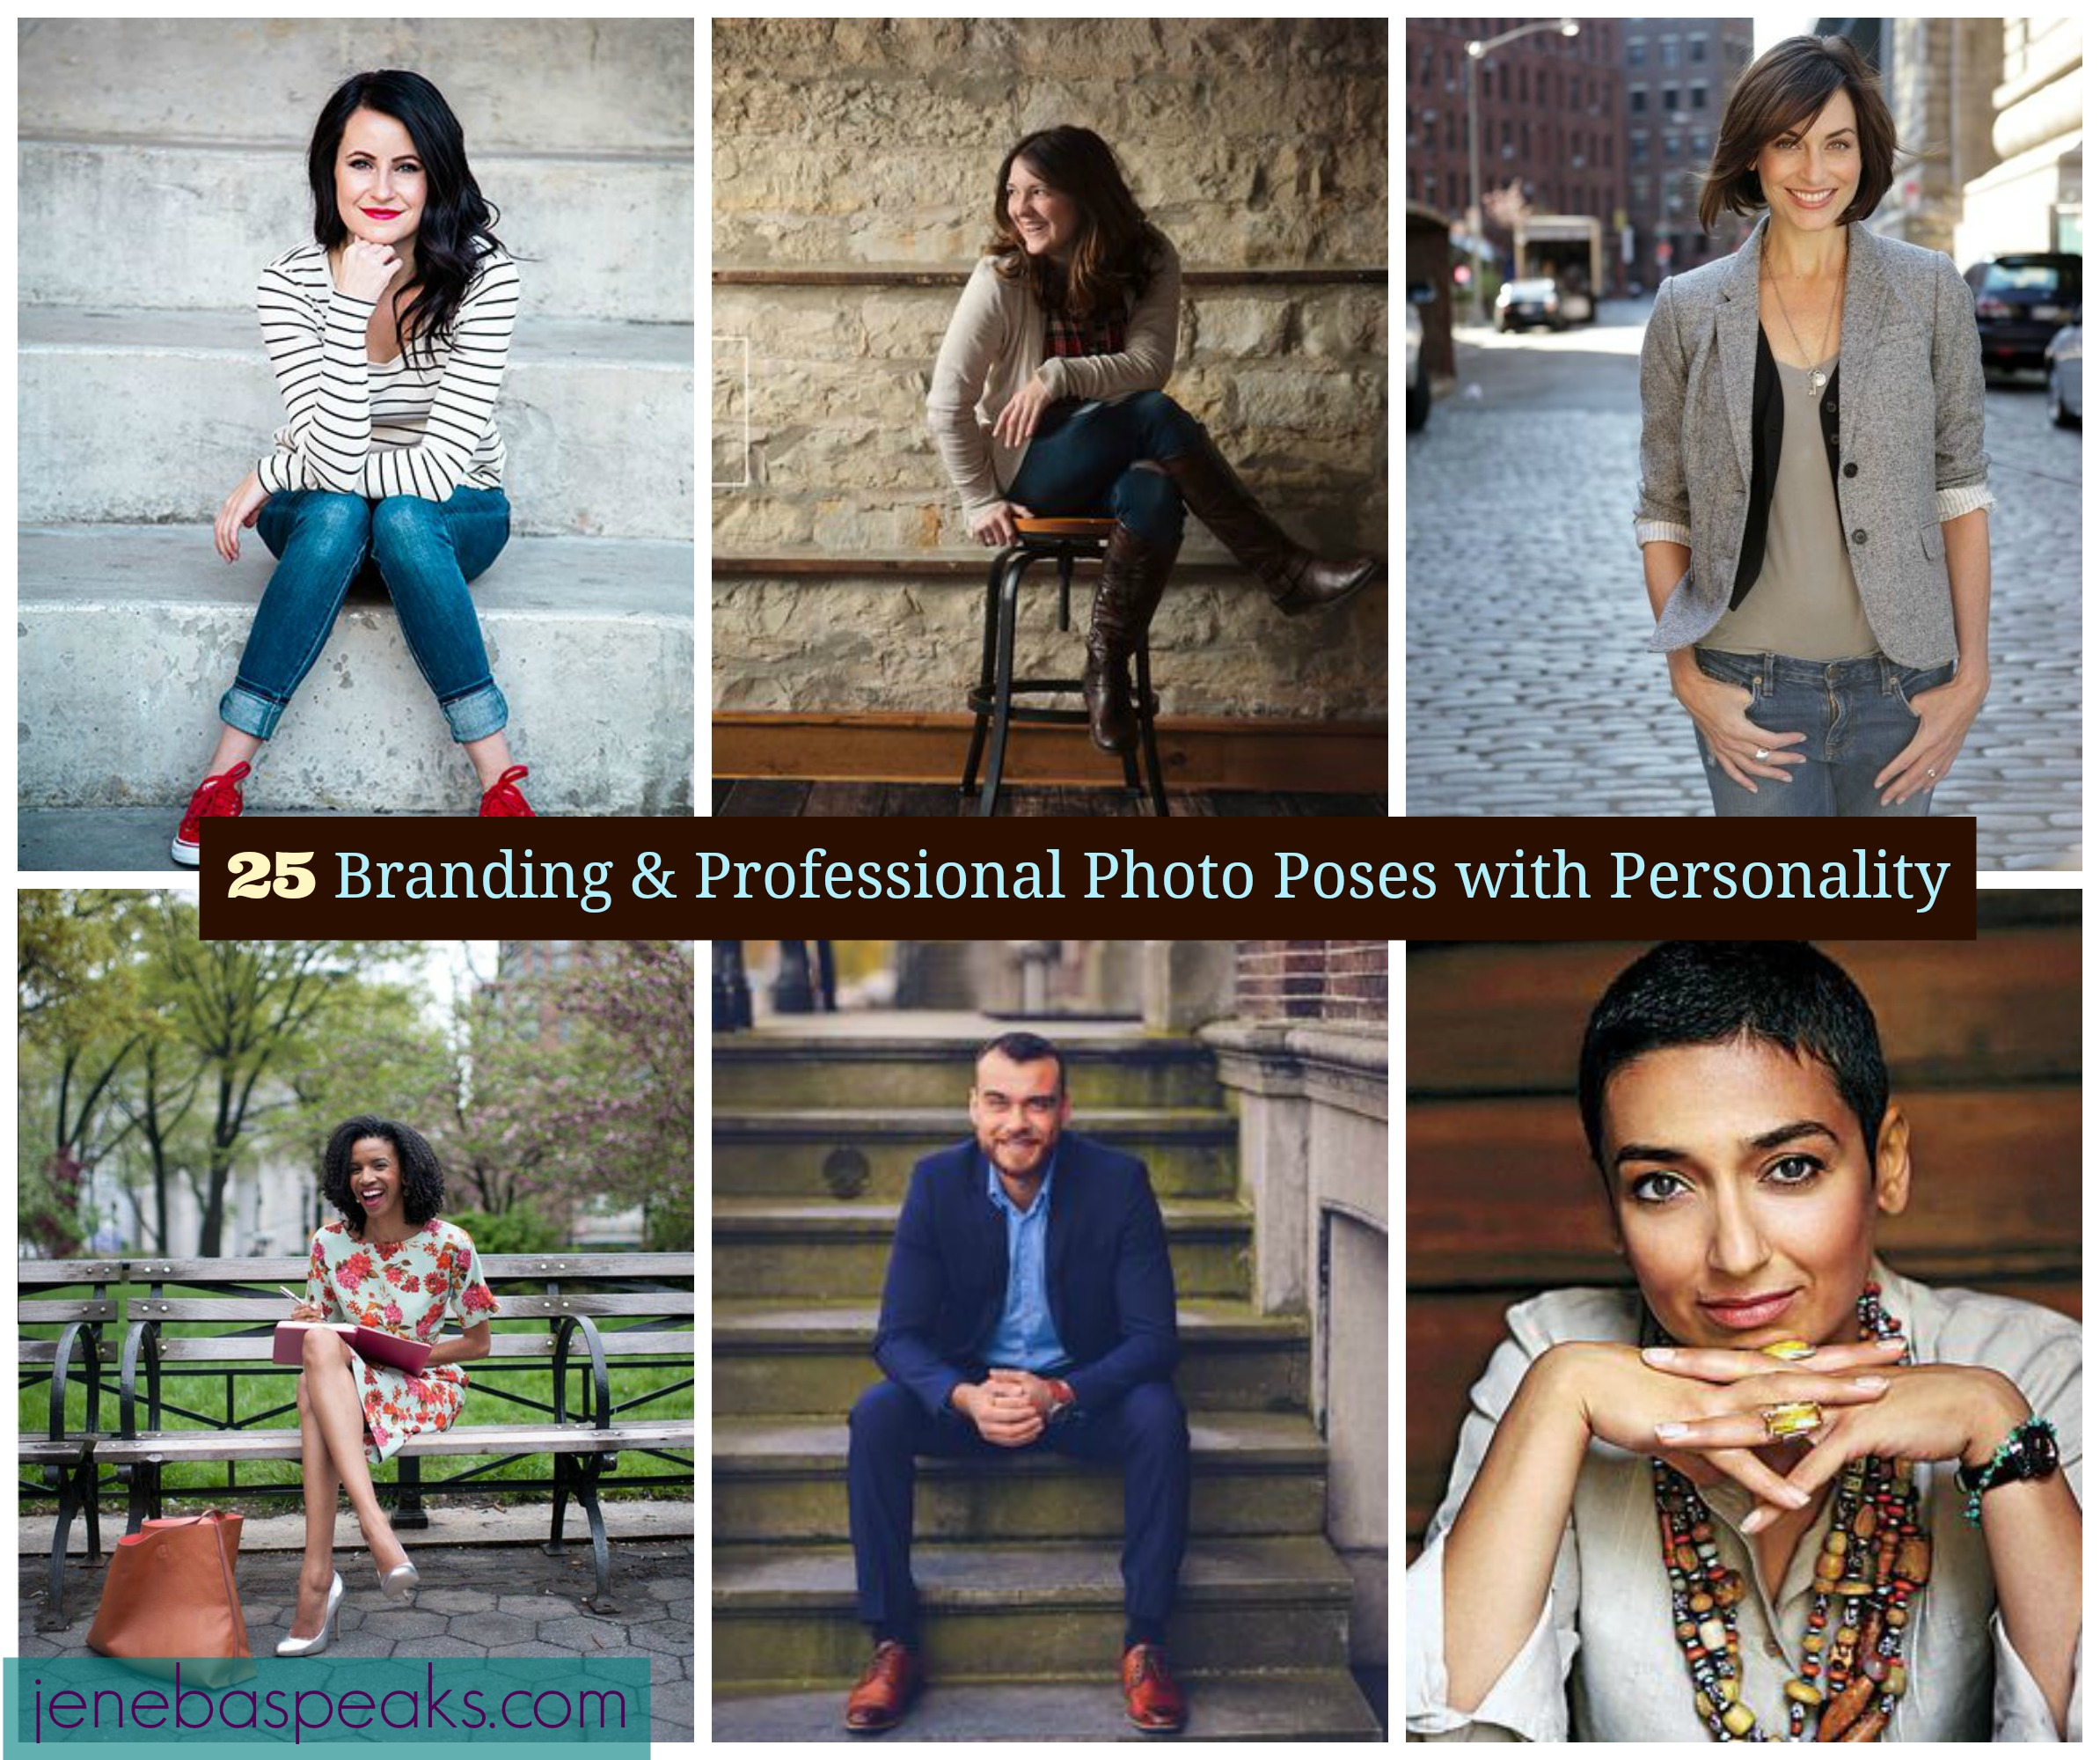 25 Professional/Branding Photos that Have Much Personality & Why I love Each